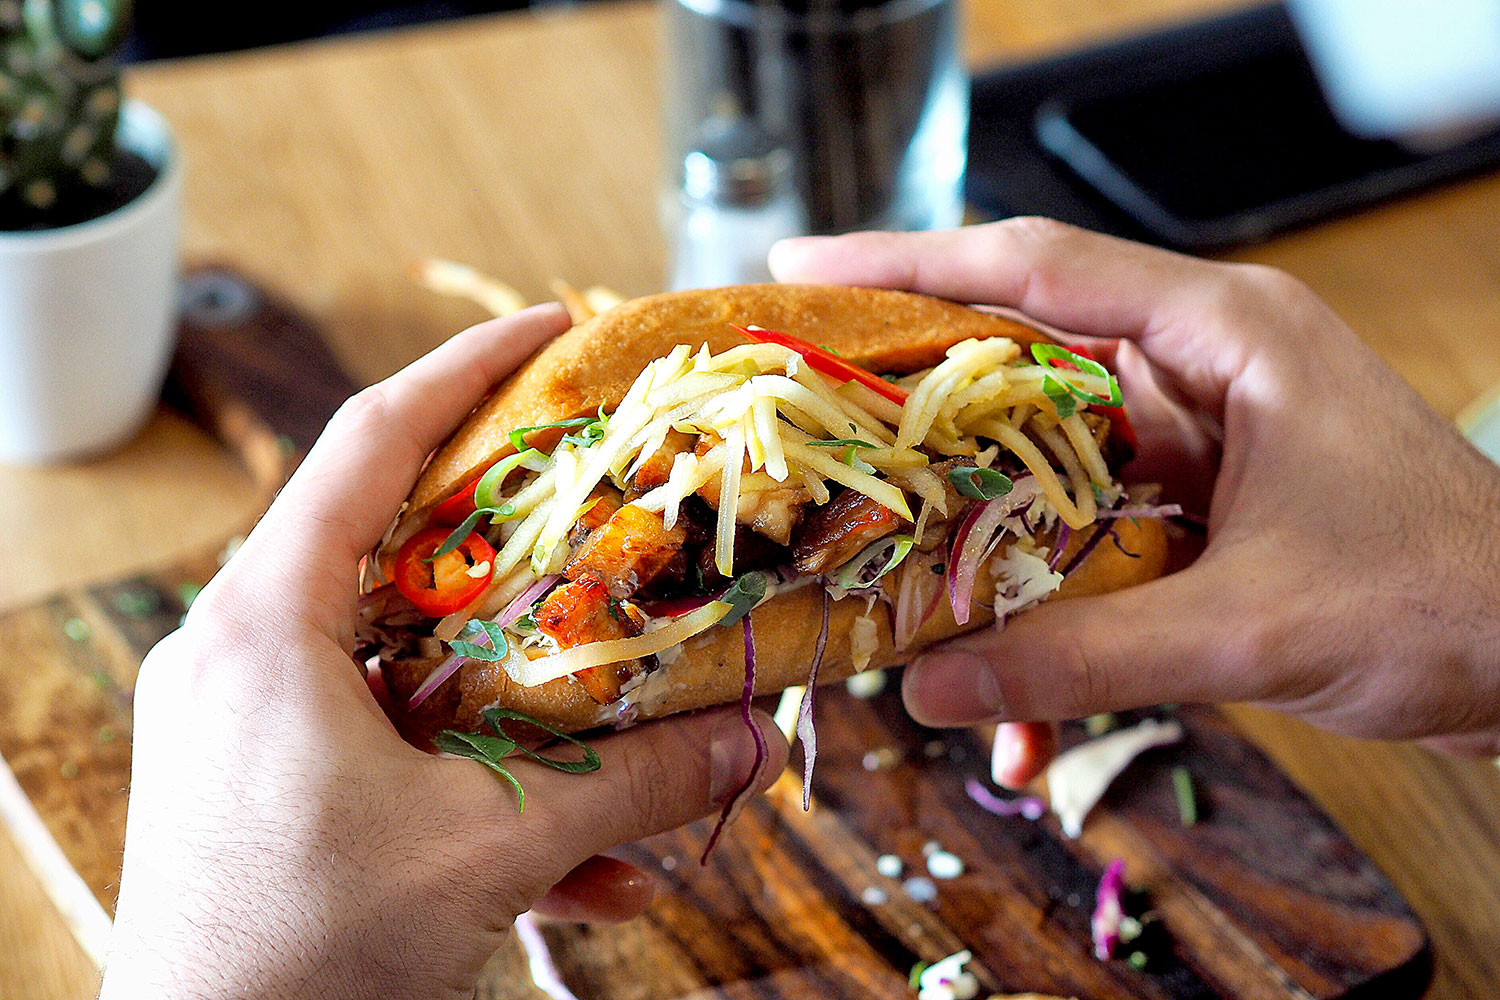 Sydney Food Blog Review of Hungry Wolf, Wollongong: Pork Belly, Po' Boy, $10